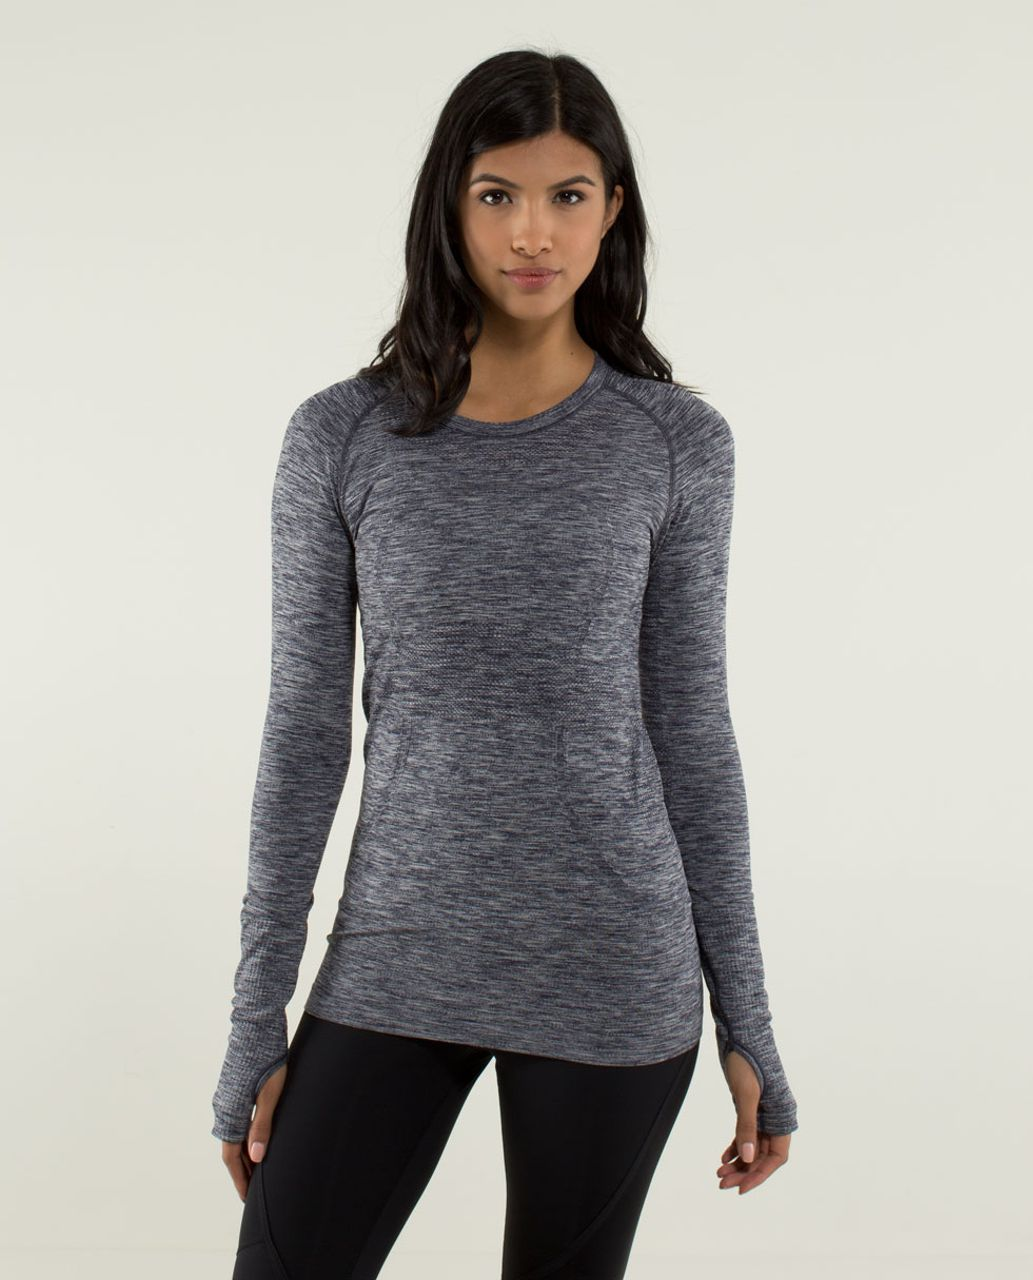 5be39a10a81c7 Lululemon Run  Swiftly Tech Long Sleeve - Heathered Cadet Blue - lulu  fanatics